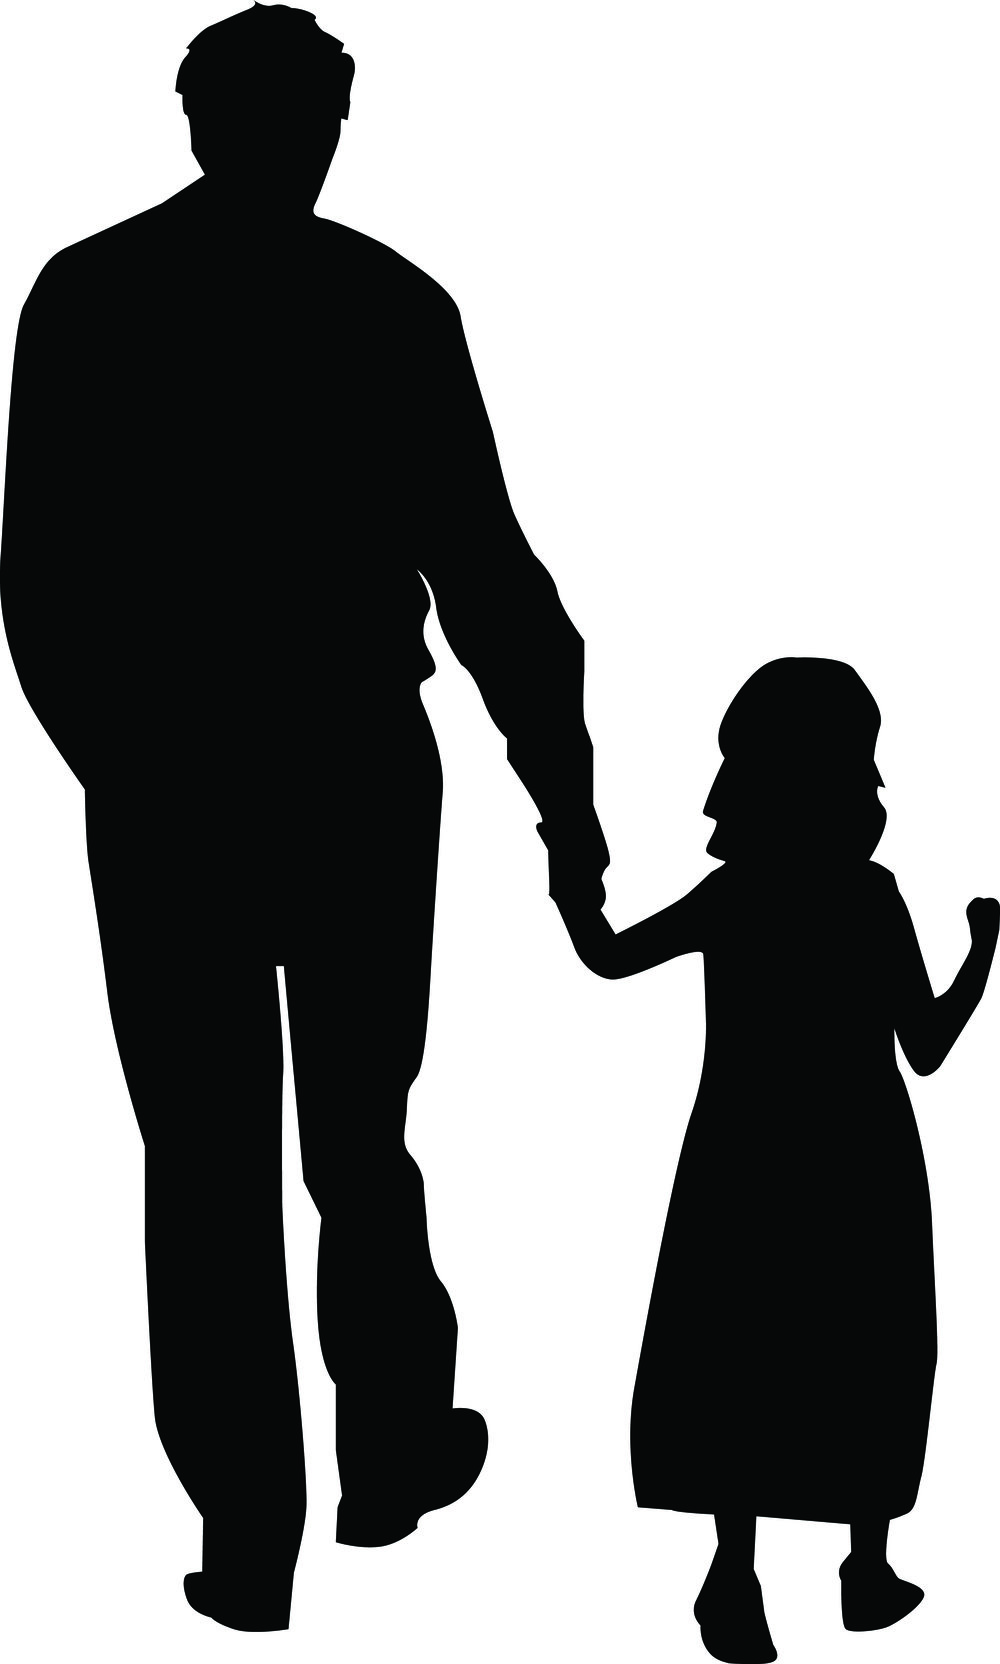 childrens-silhouette-24.jpg